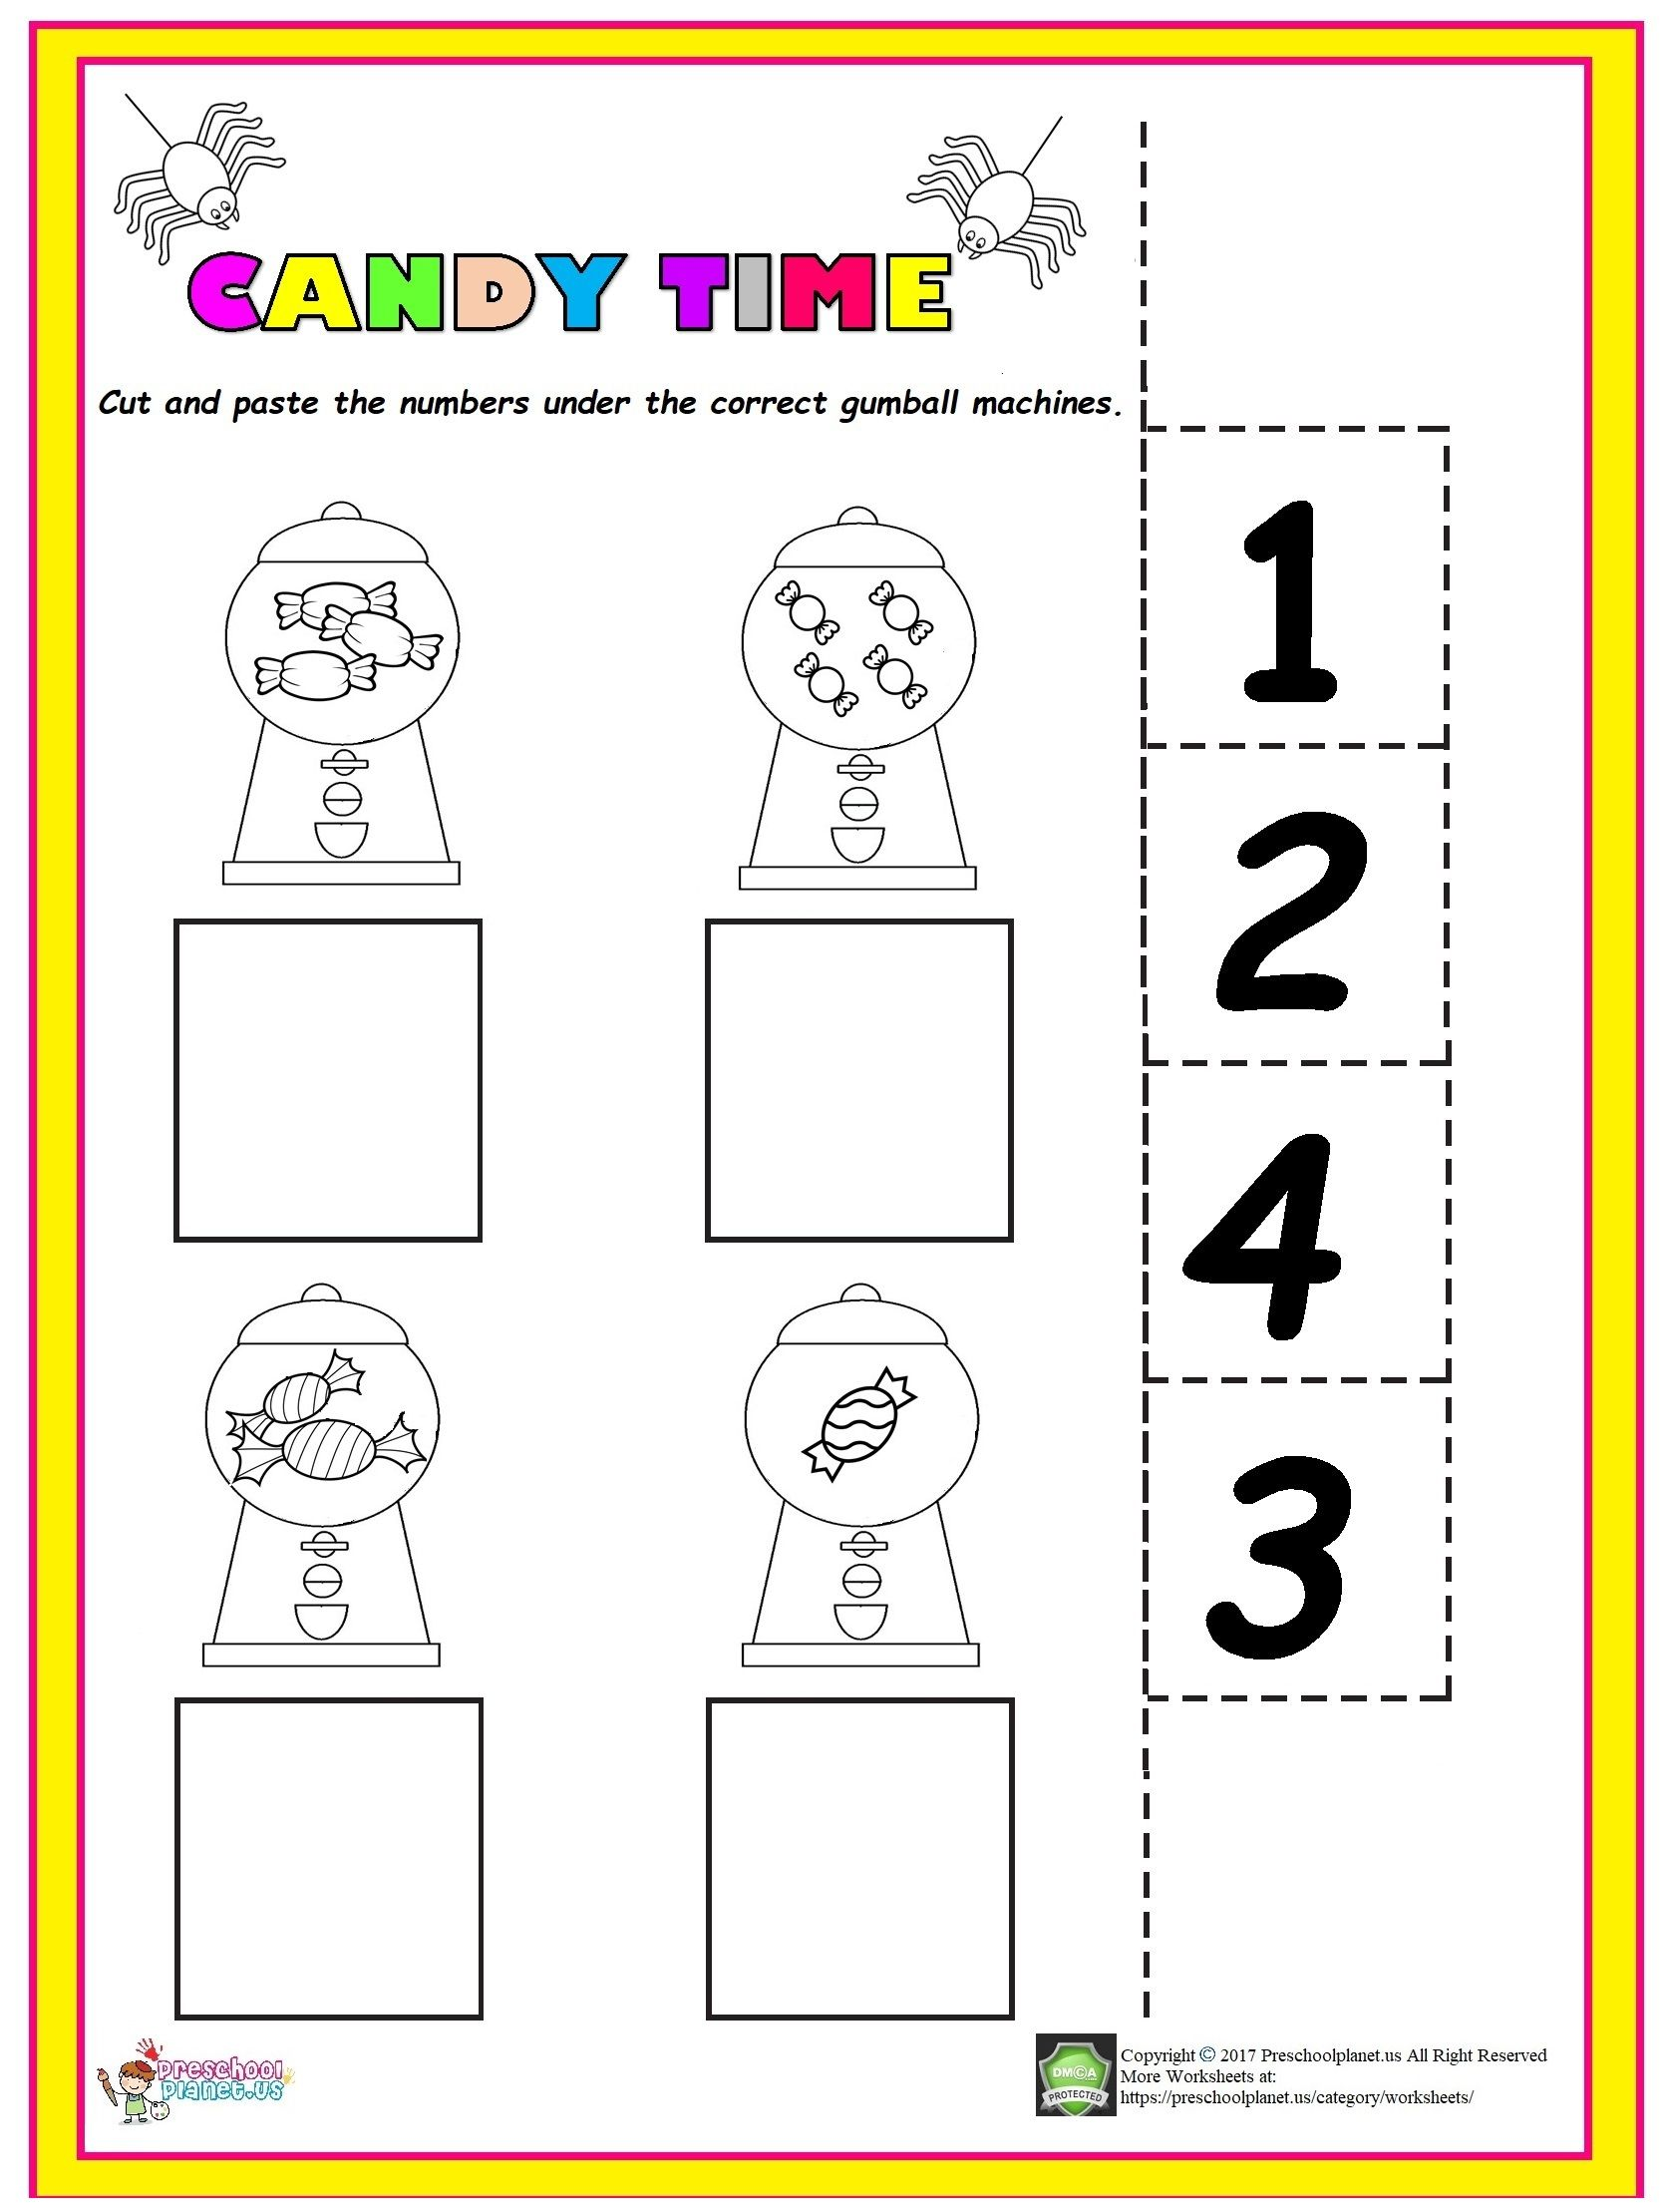 Easy Candy Counting Worksheet | Preschool homework ...